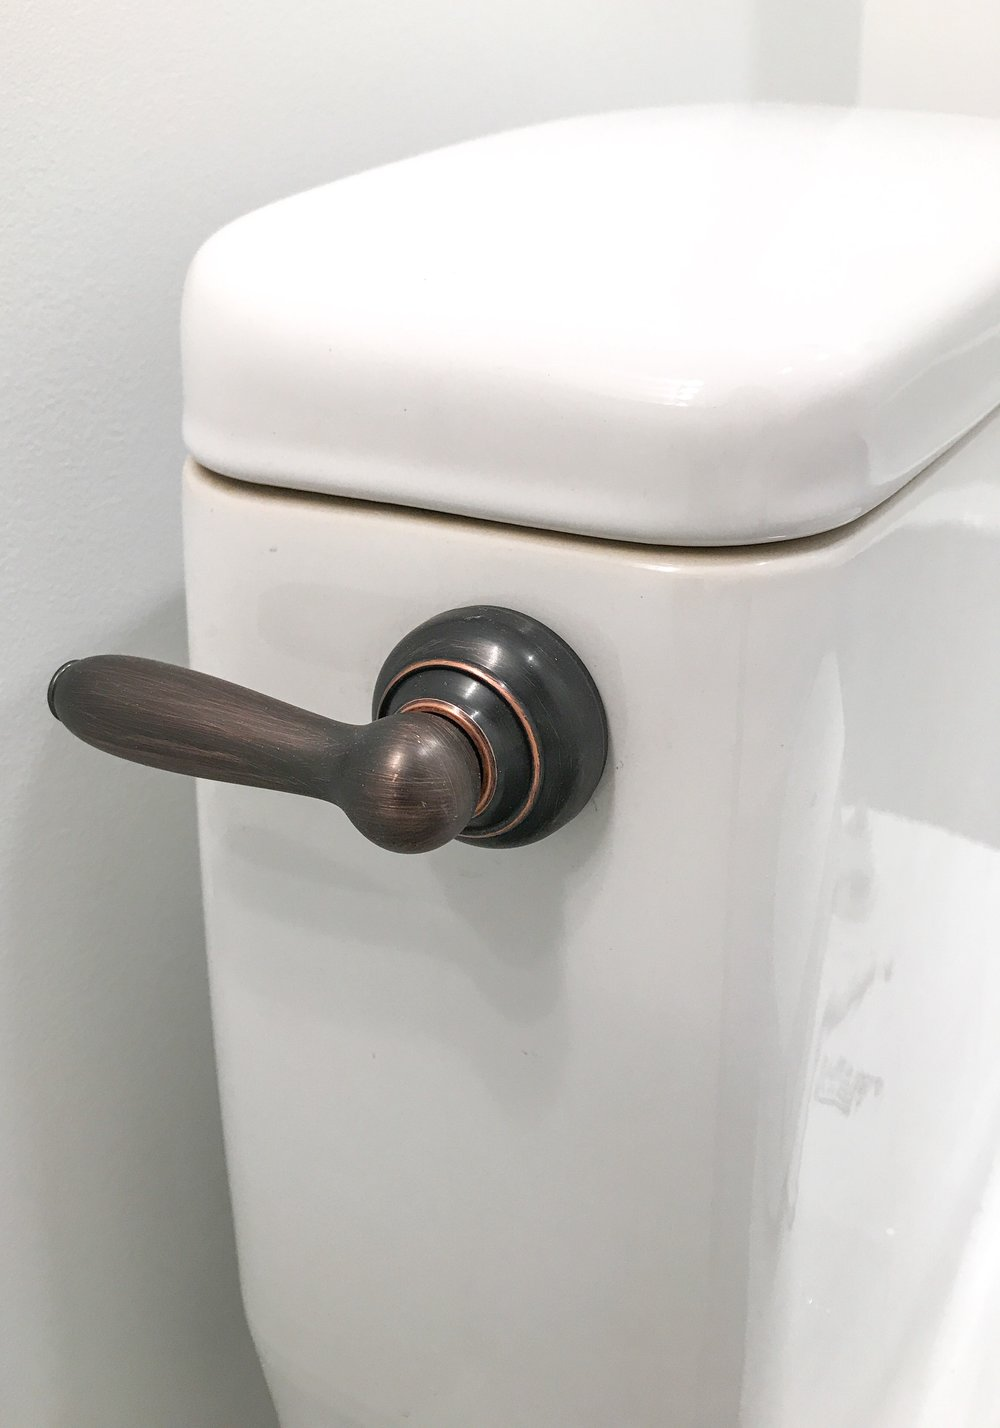 Salvaged Toilets - How To Give Your Toilet a New Look. Fluidmaster Tank Levers #sponsored